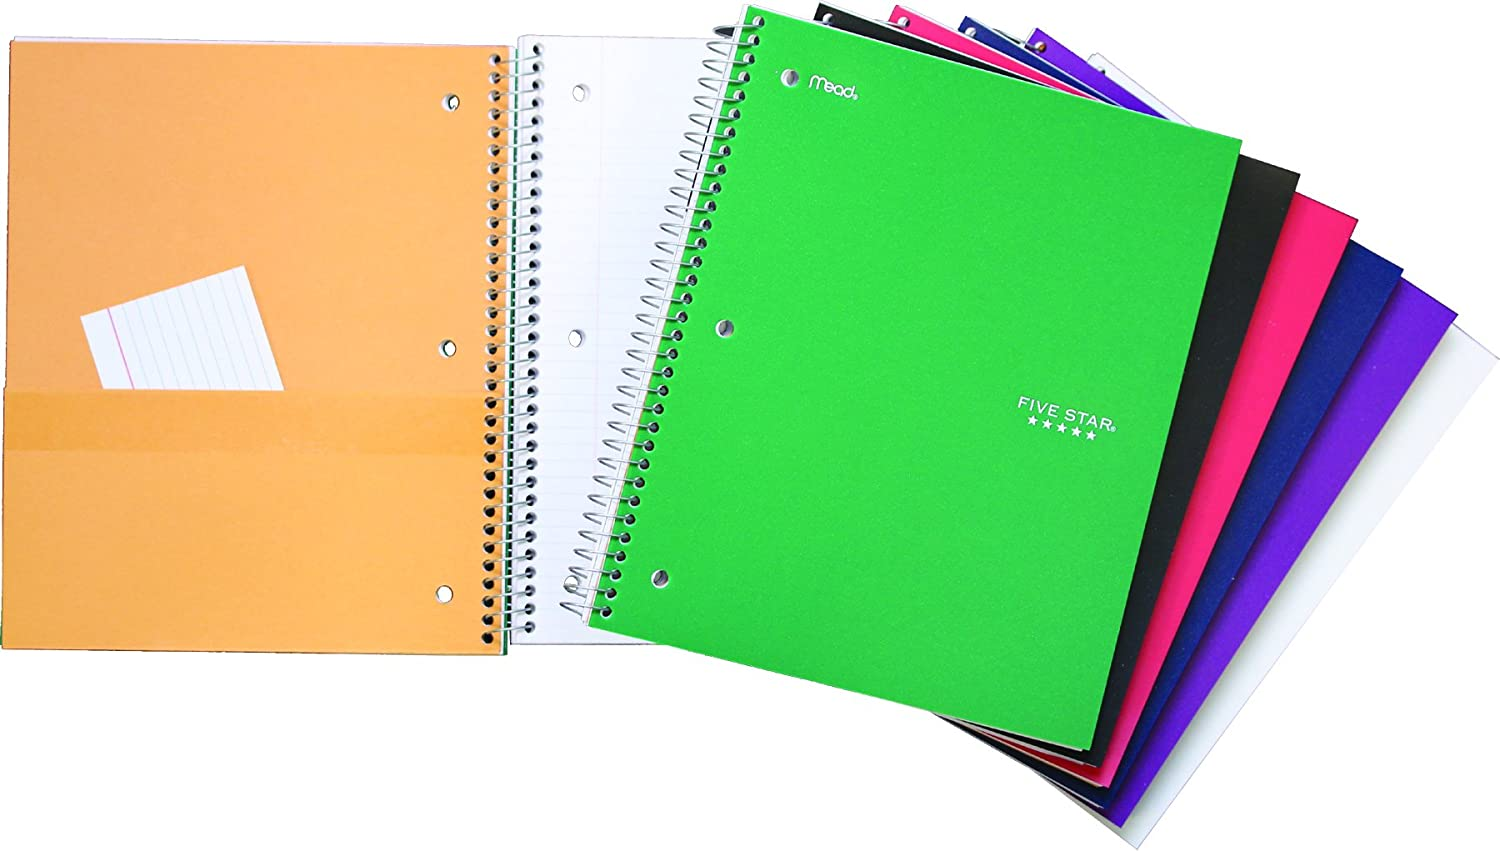 Five Star 05044 Poly Cover Notebook, 2 Subject, College Ruled, 10-1/2x8-Inch, 120-Sheets, Assorted Colors